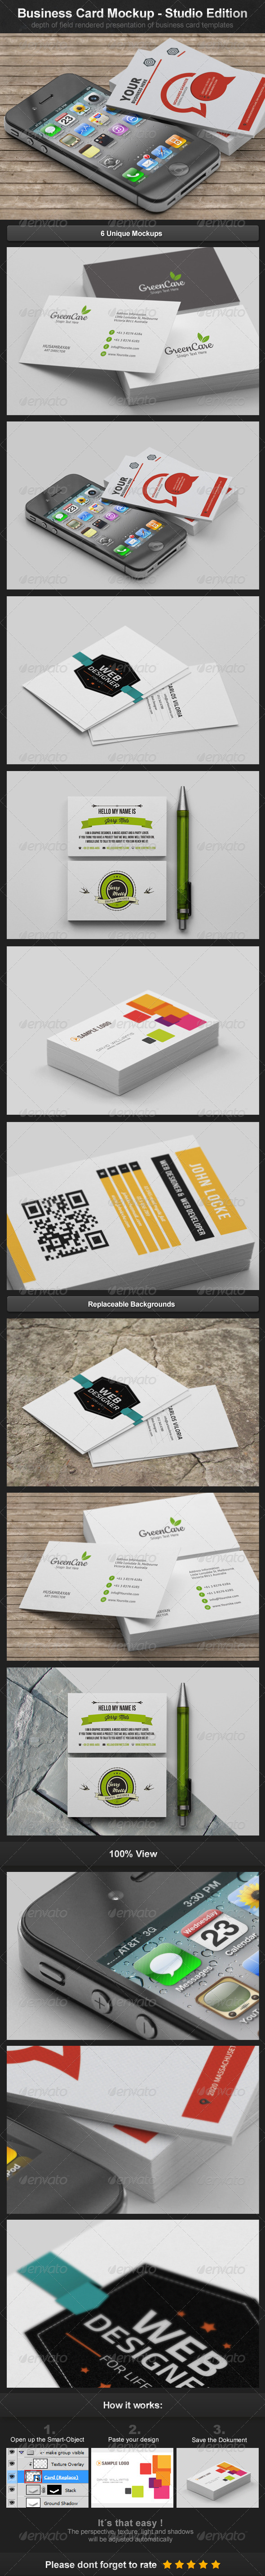 Business Card Mockups - Studio Edition - Business Cards Print